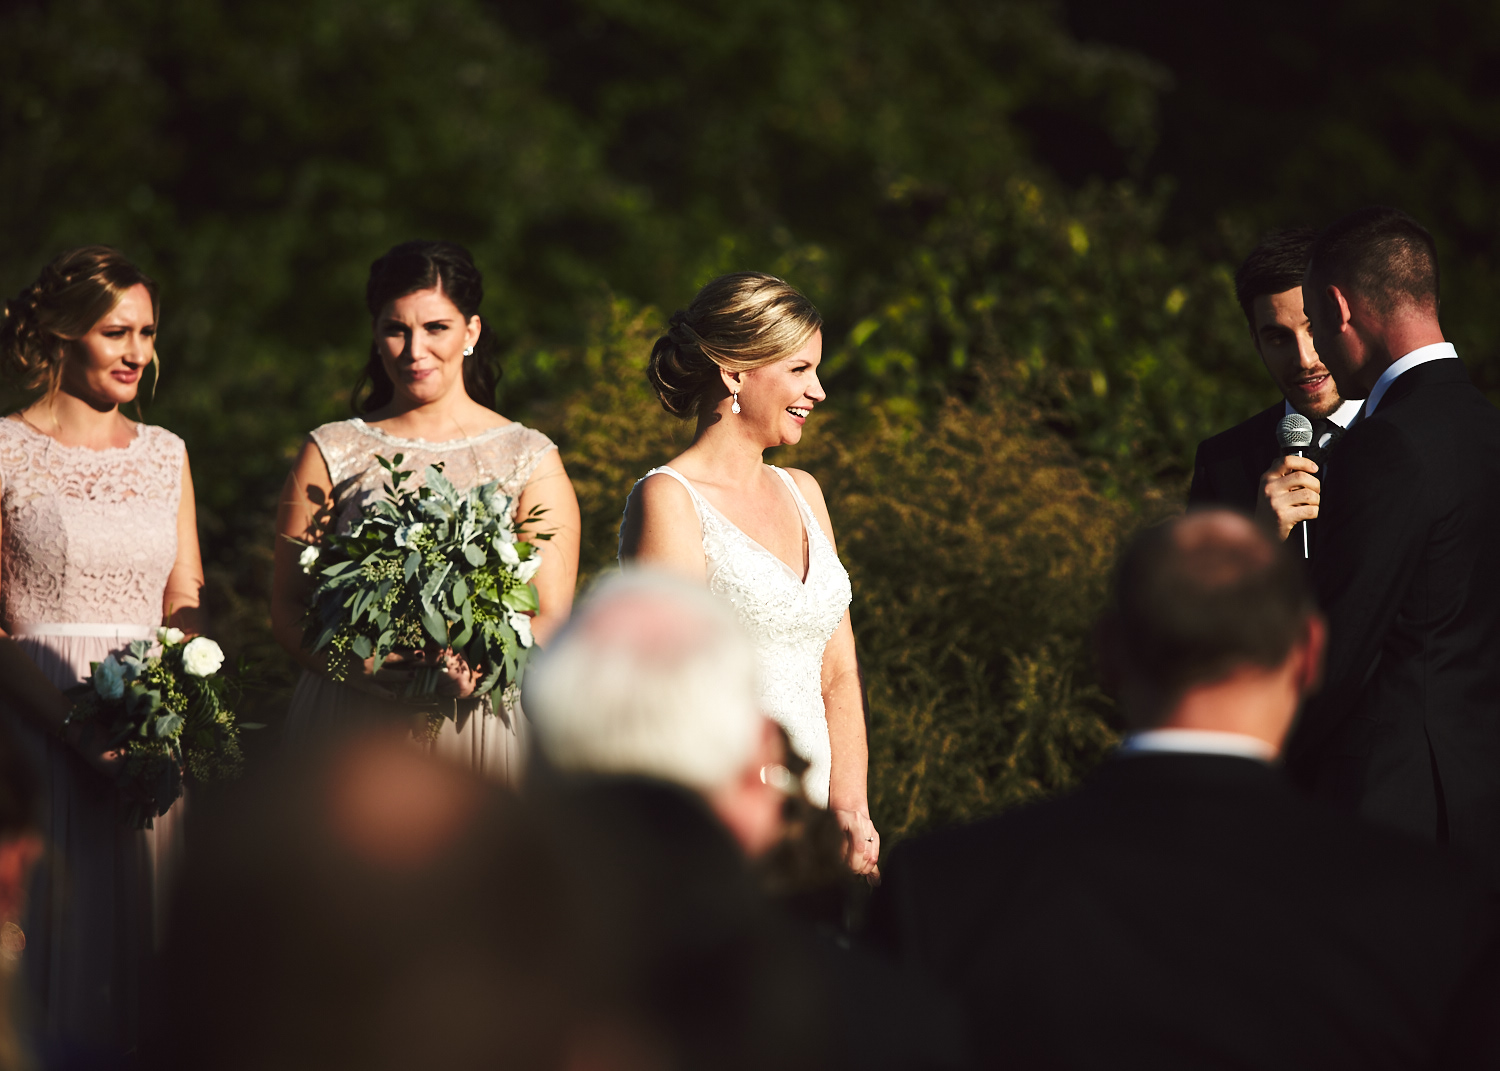 161013__T&J__PeronaFarmsWedding_By_BriJohnsonWeddings_0060.jpg